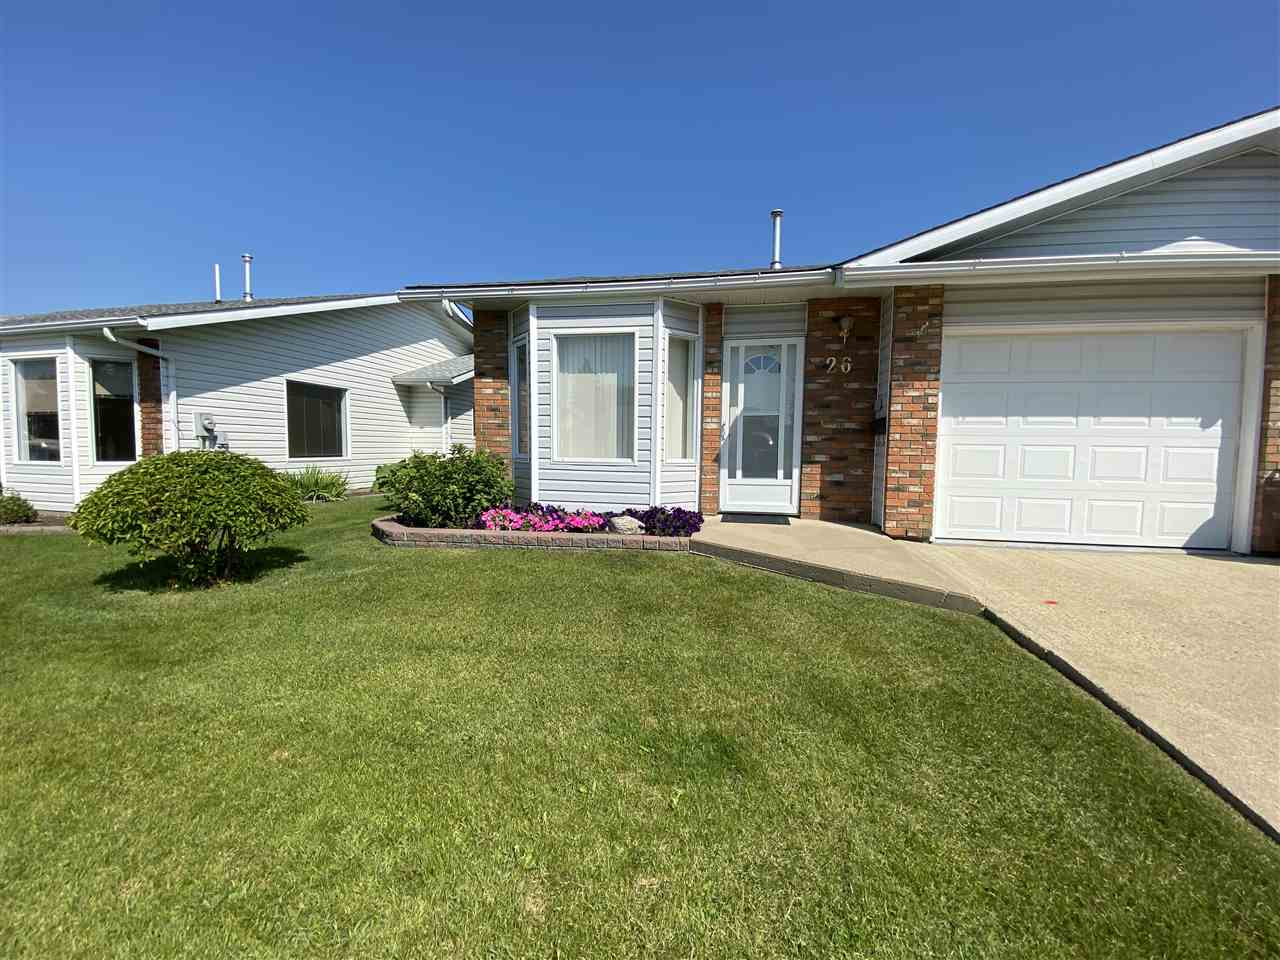 FEATURED LISTING: 26 - 11015 105 Avenue Westlock